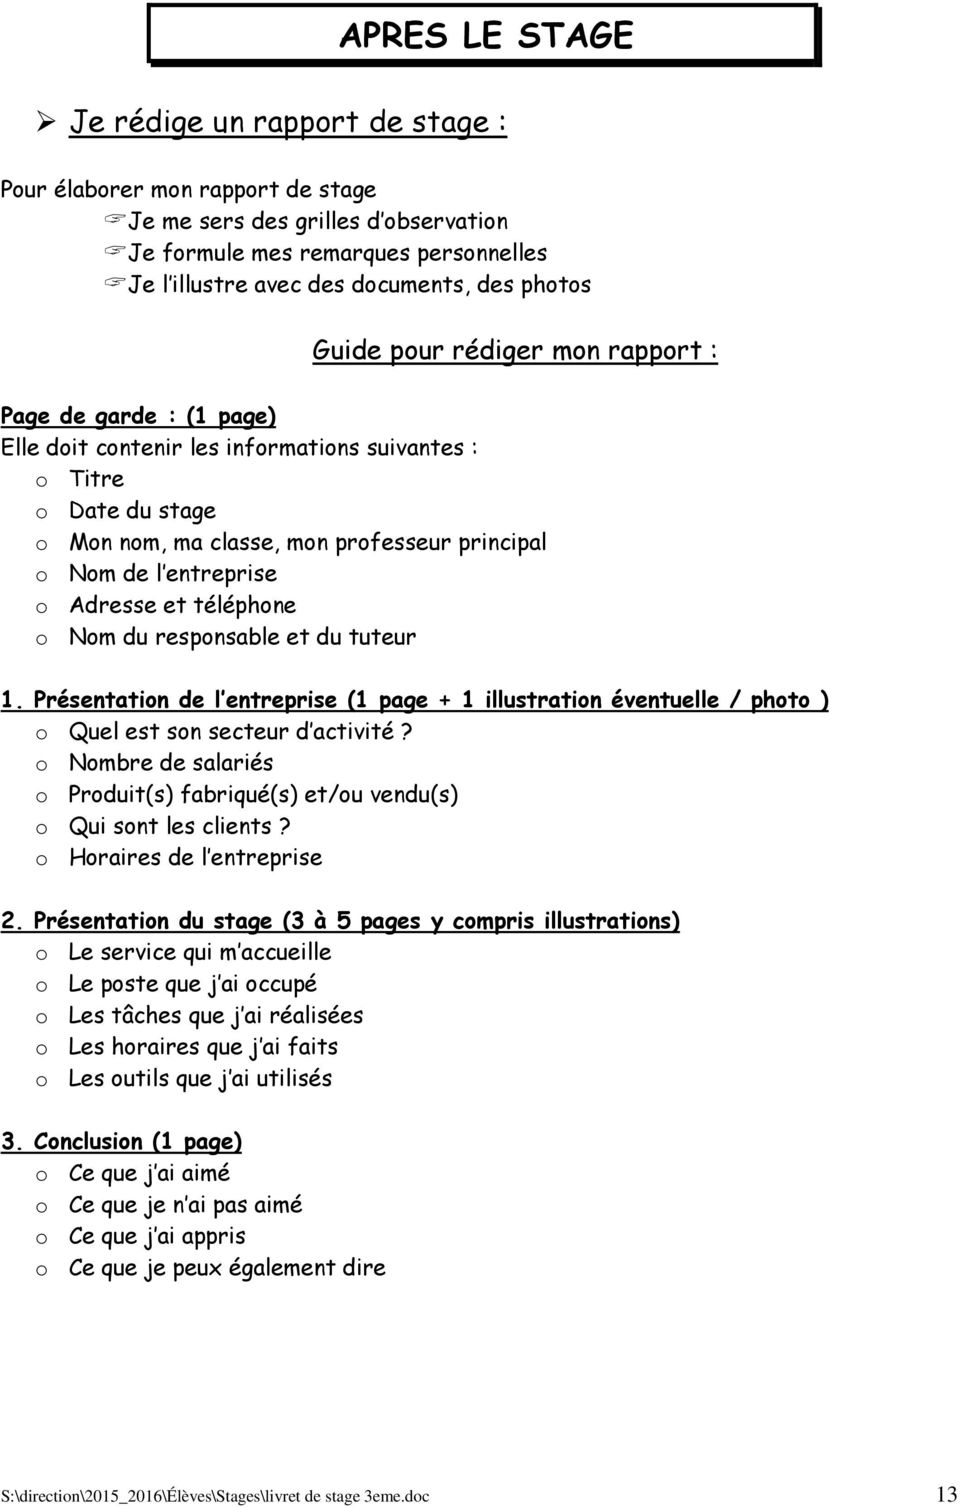 Livret Stage D Observation En Entreprise Pdf Free Download